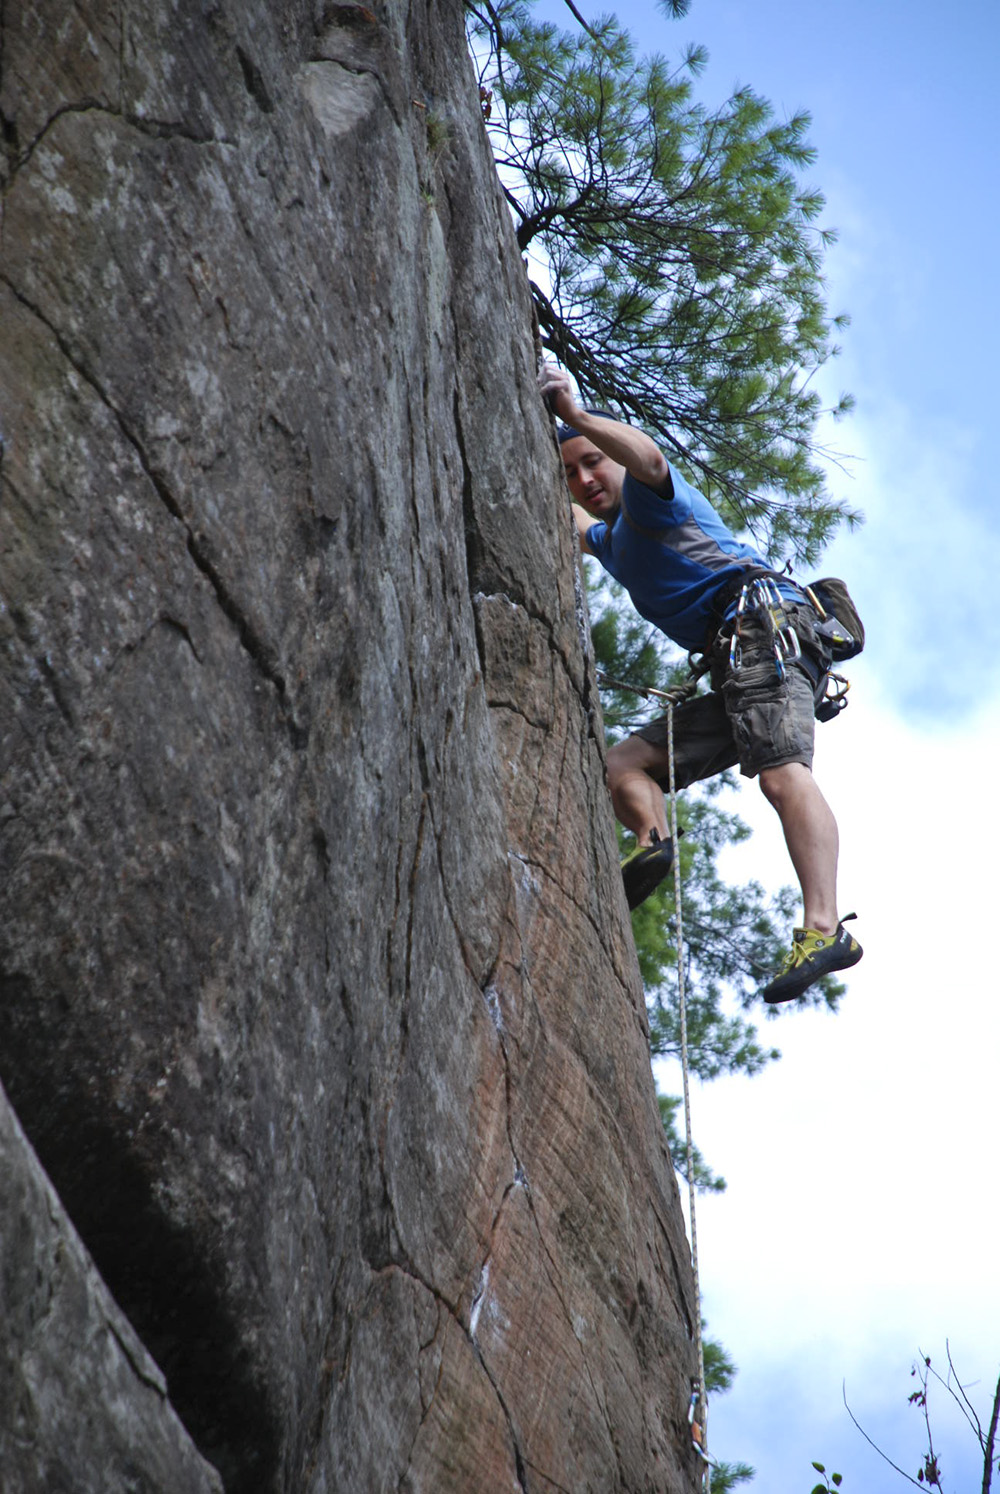 ascent-climbing-lead-course-ct-2.jpg